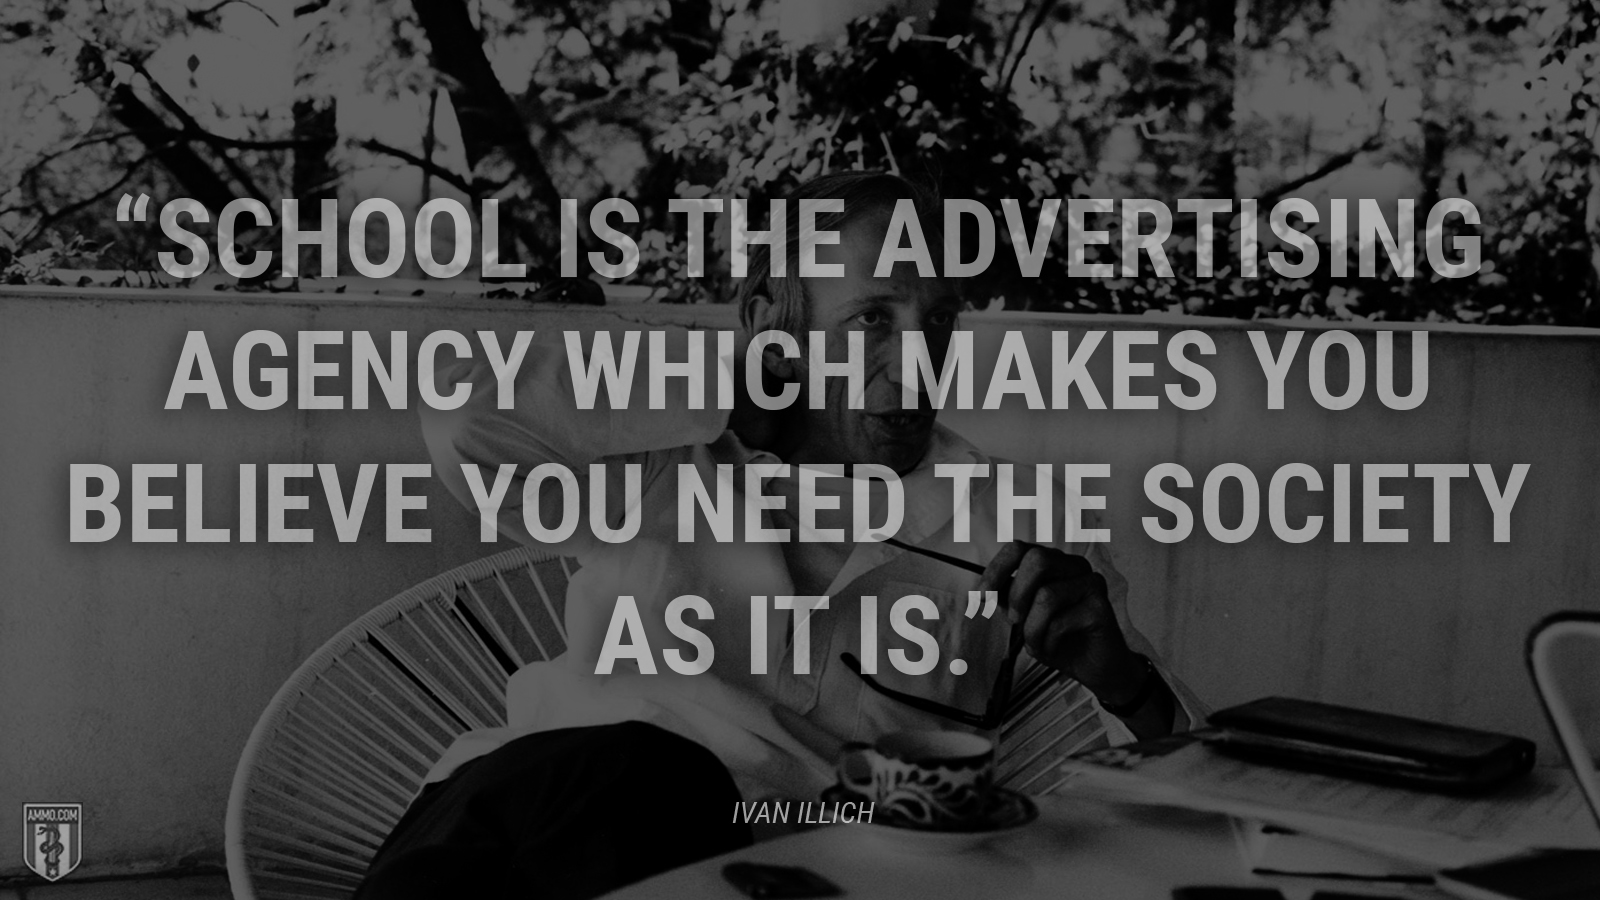 """School is the advertising agency which makes you believe you need the society as it is."" - Ivan Illich"